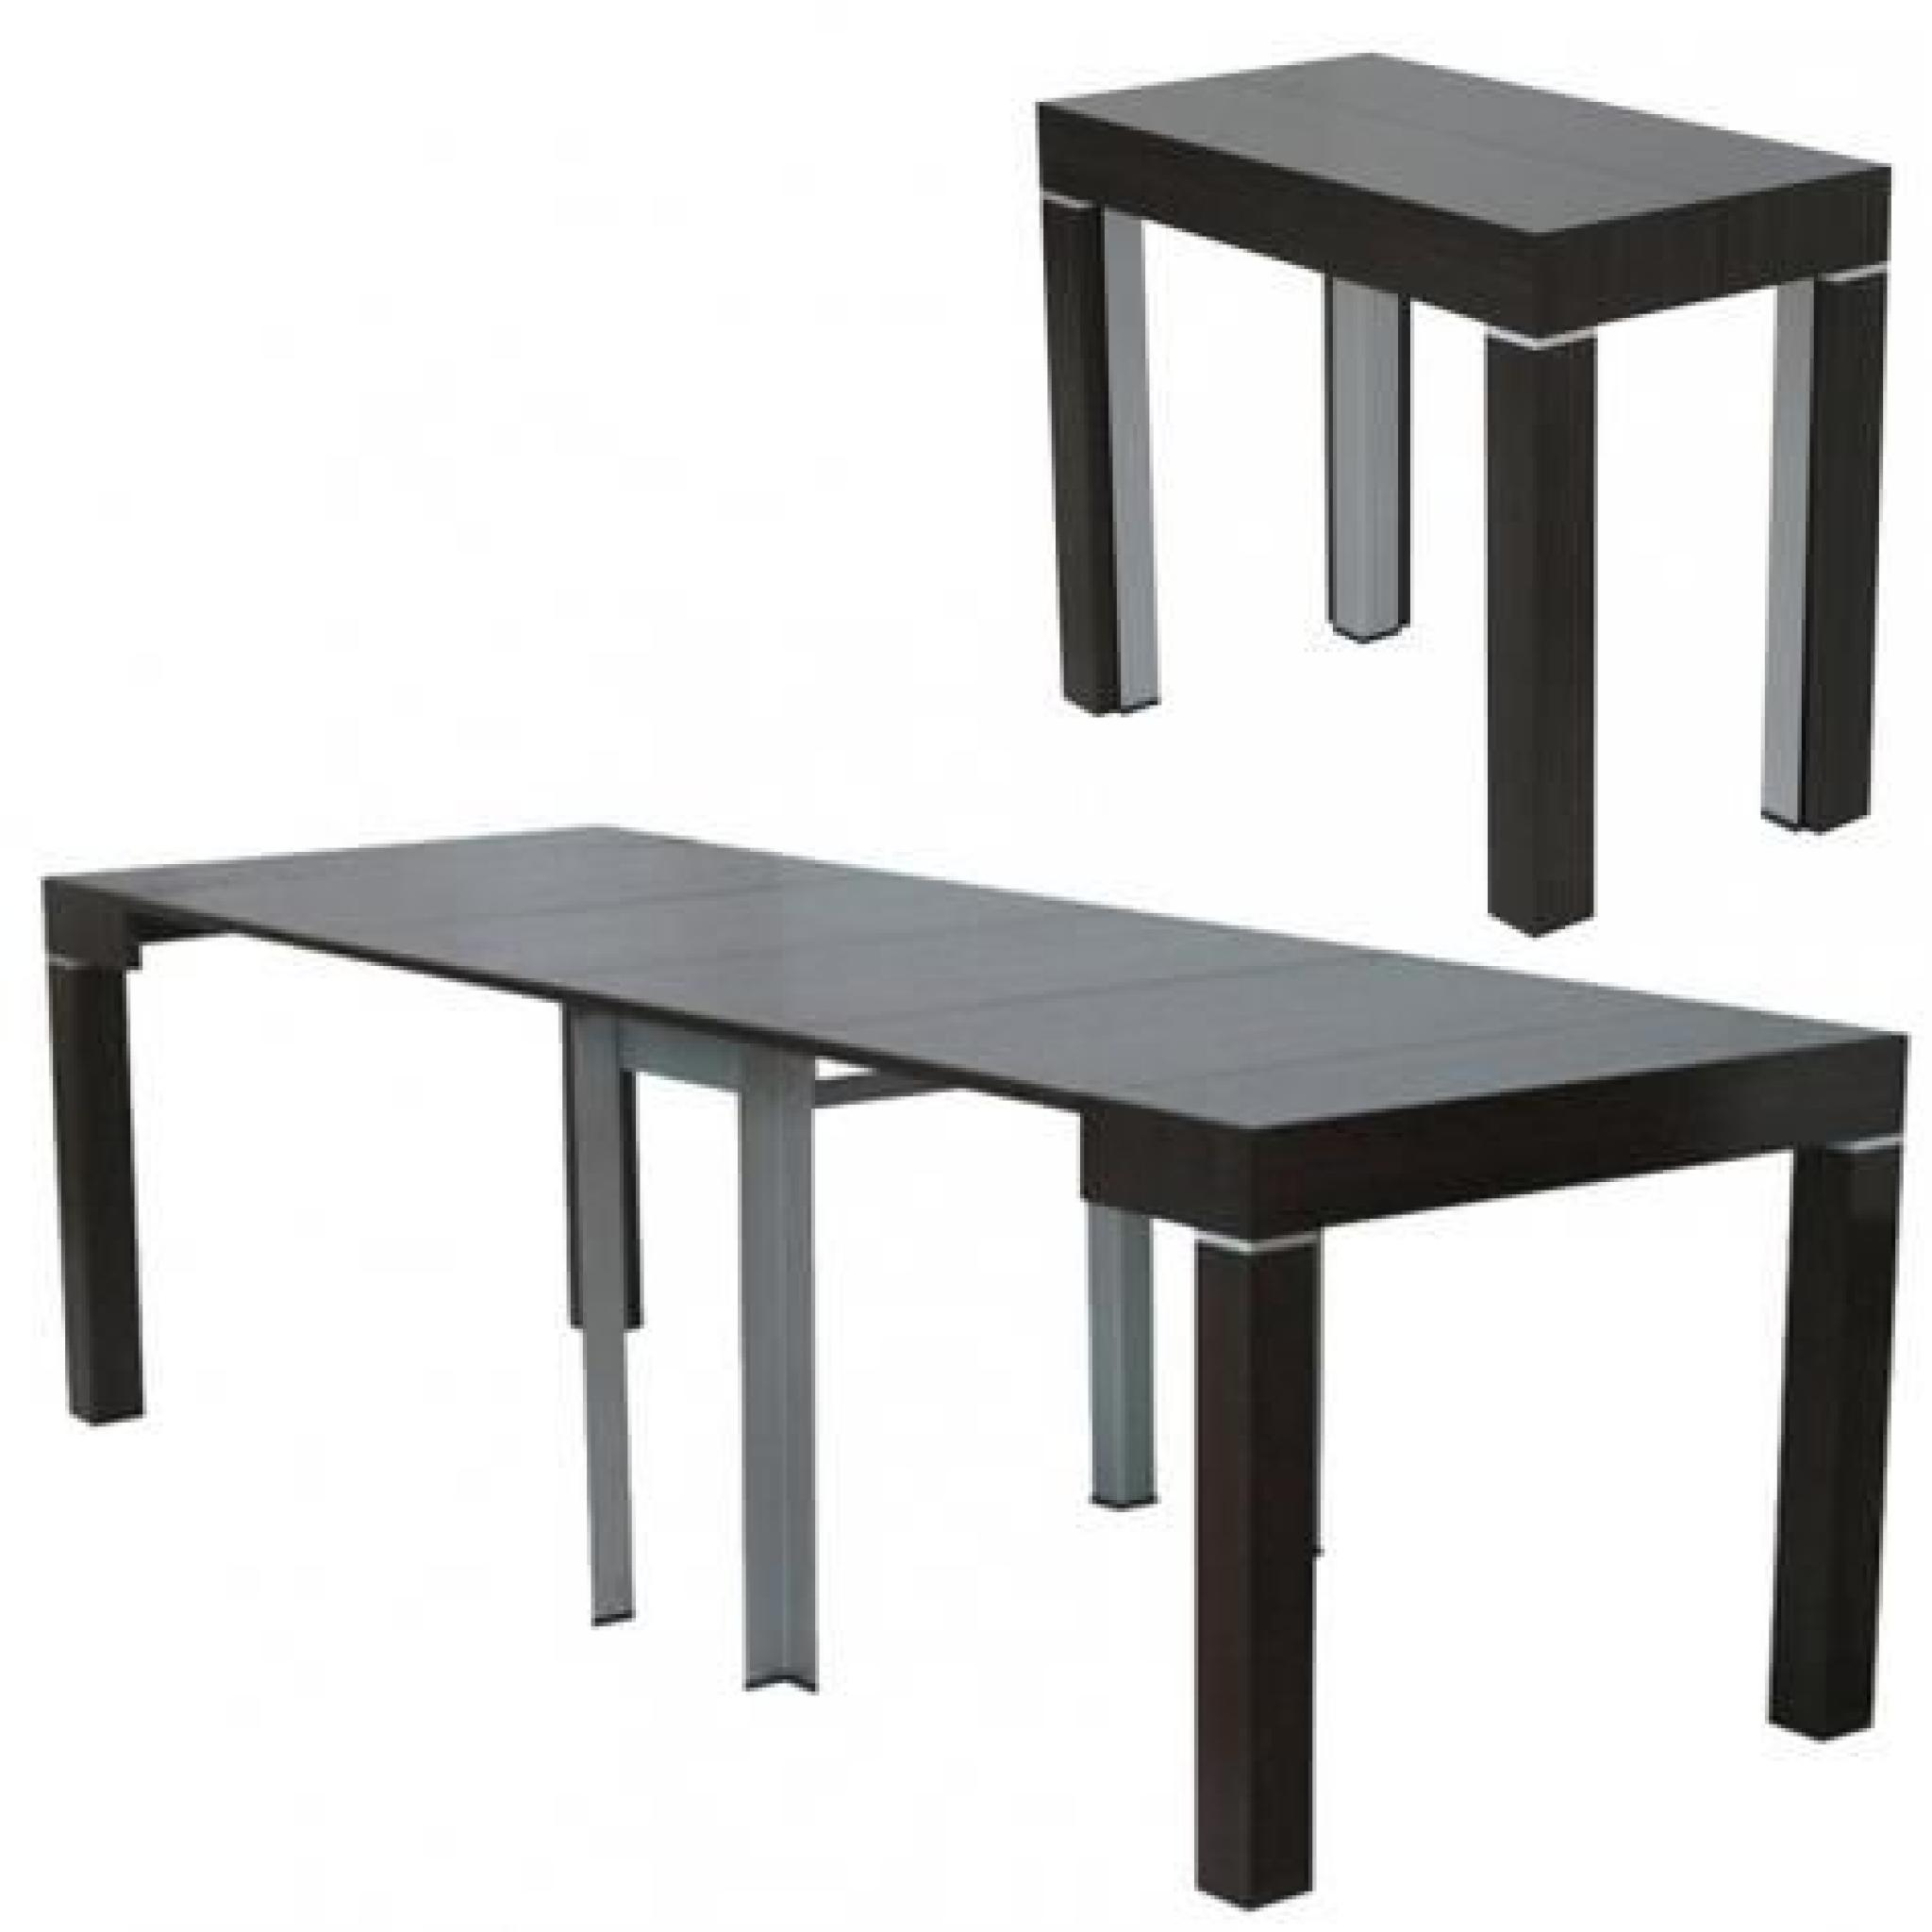 Table De Salle A Manger Wenge Of Table Console Extensible Wenge Avec 4 Rallonges Alesia